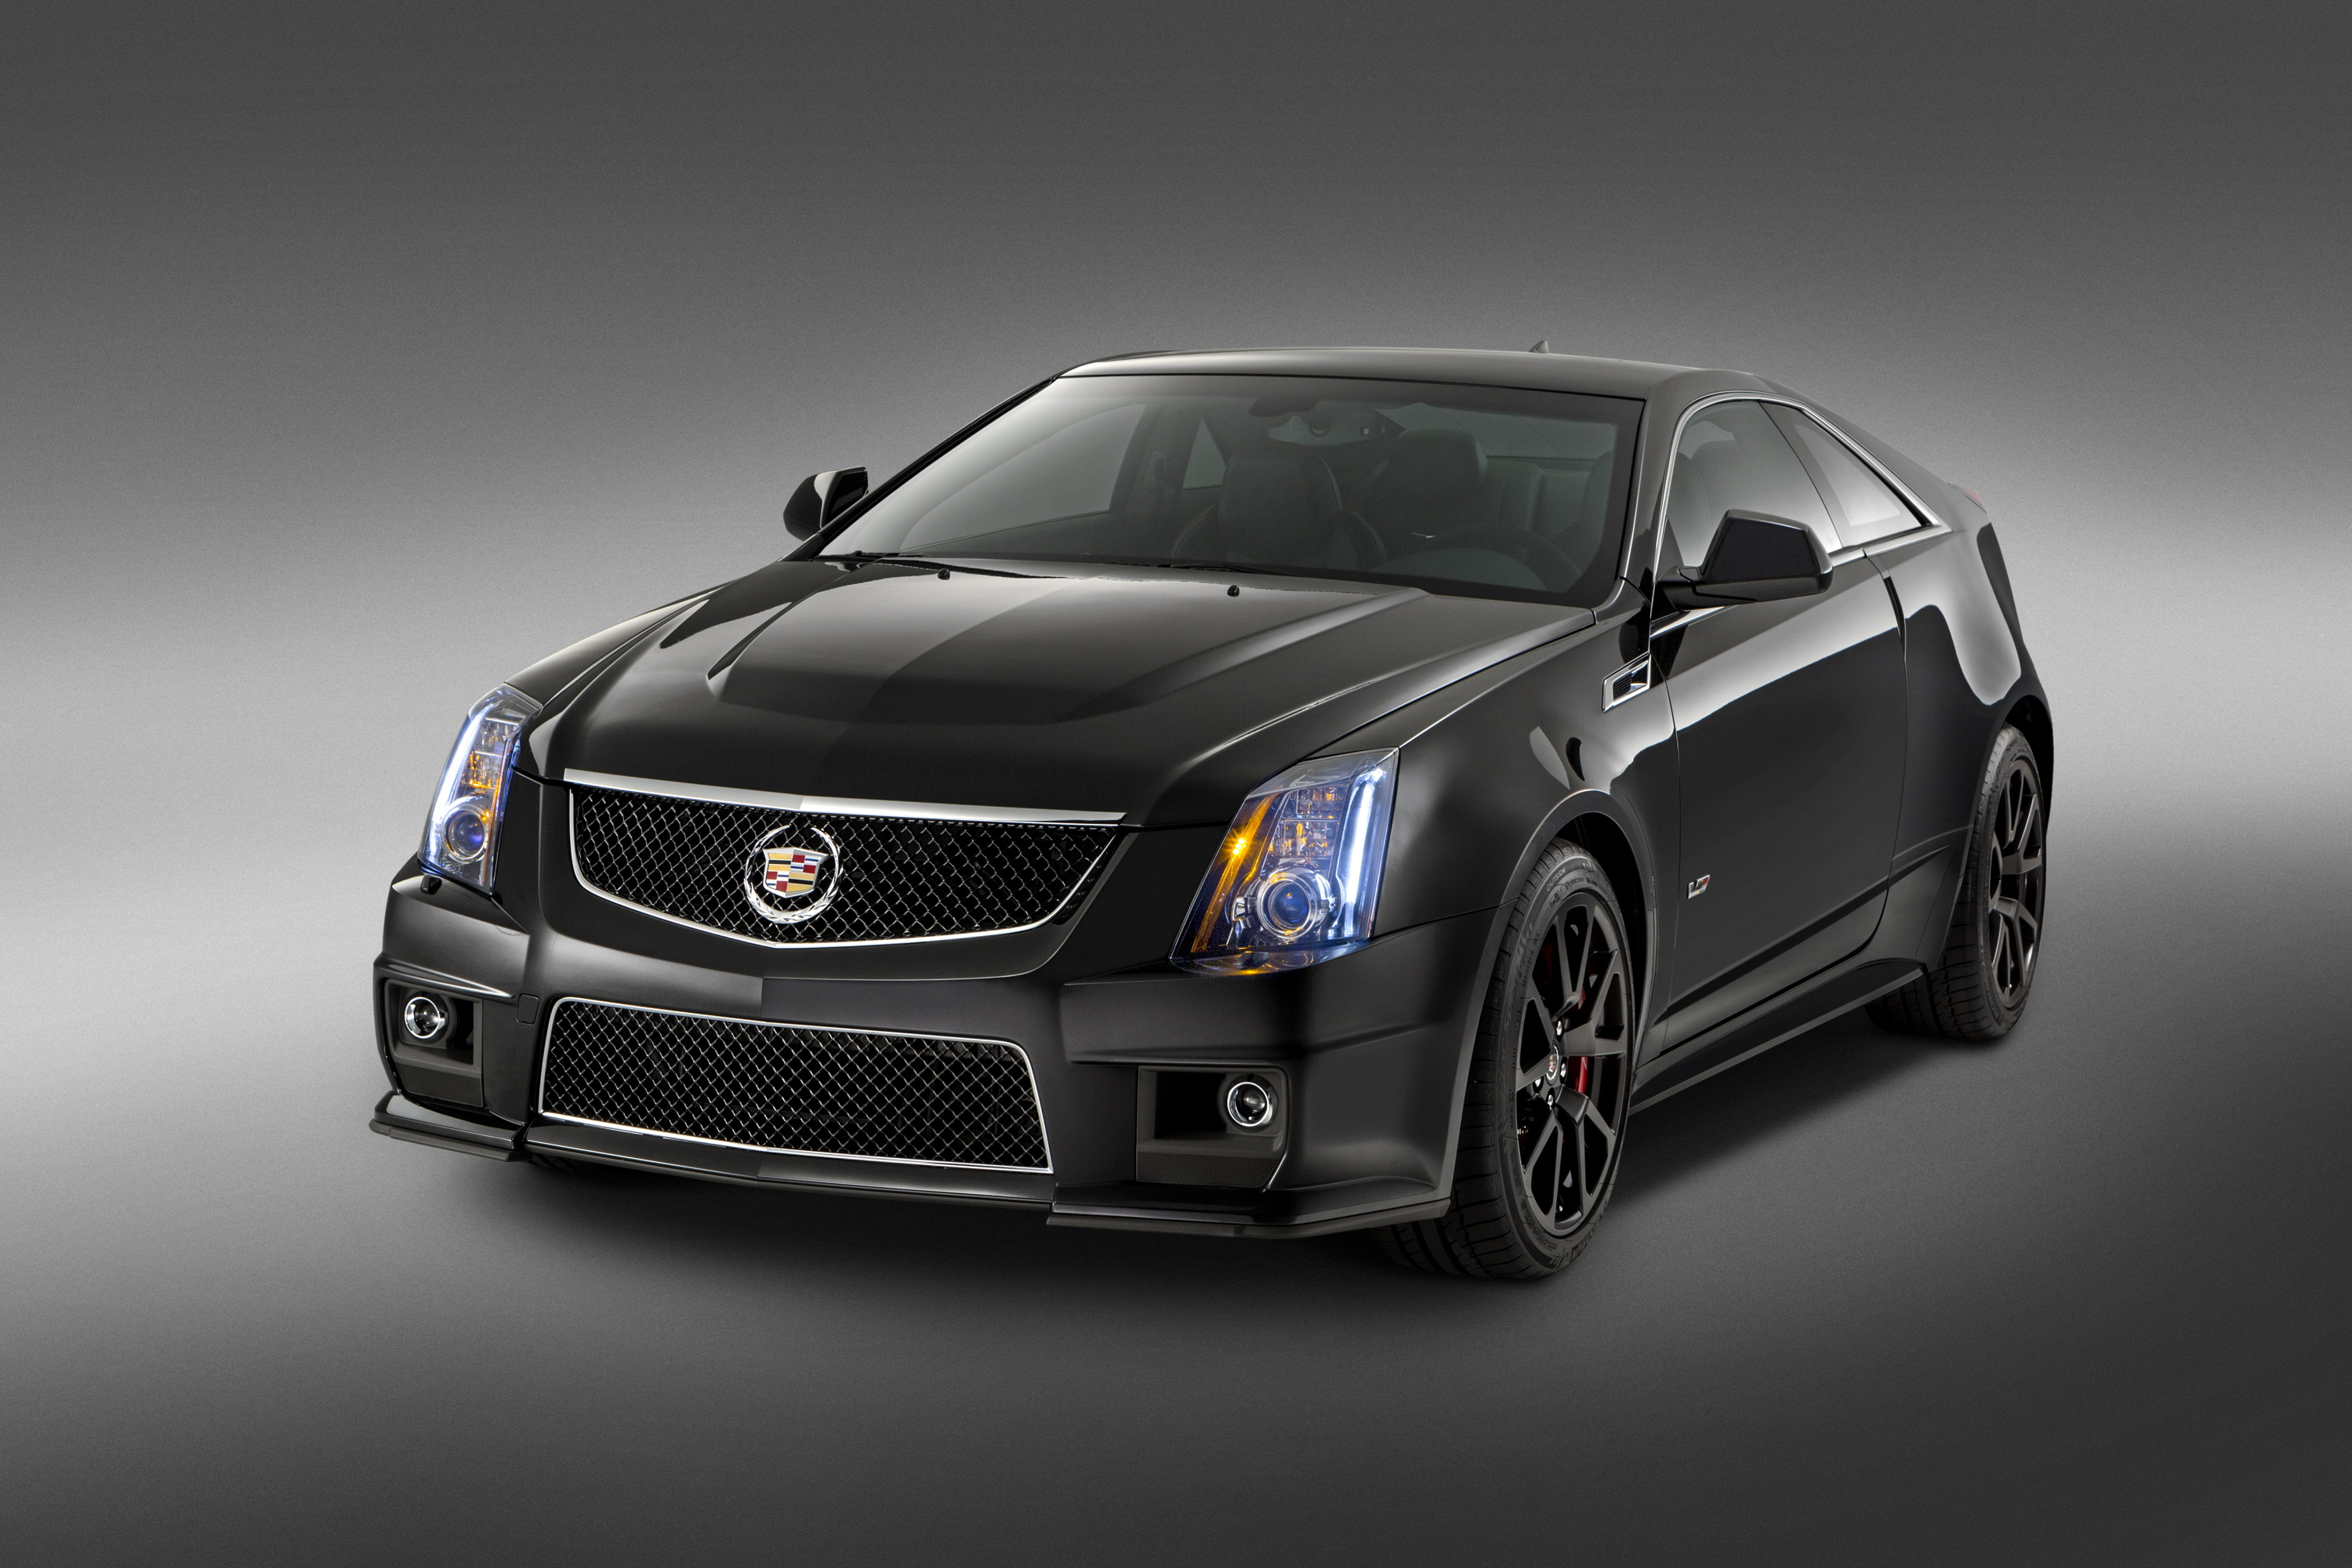 Cadillac Celebrates V Series With 2015 Cts V Coupe